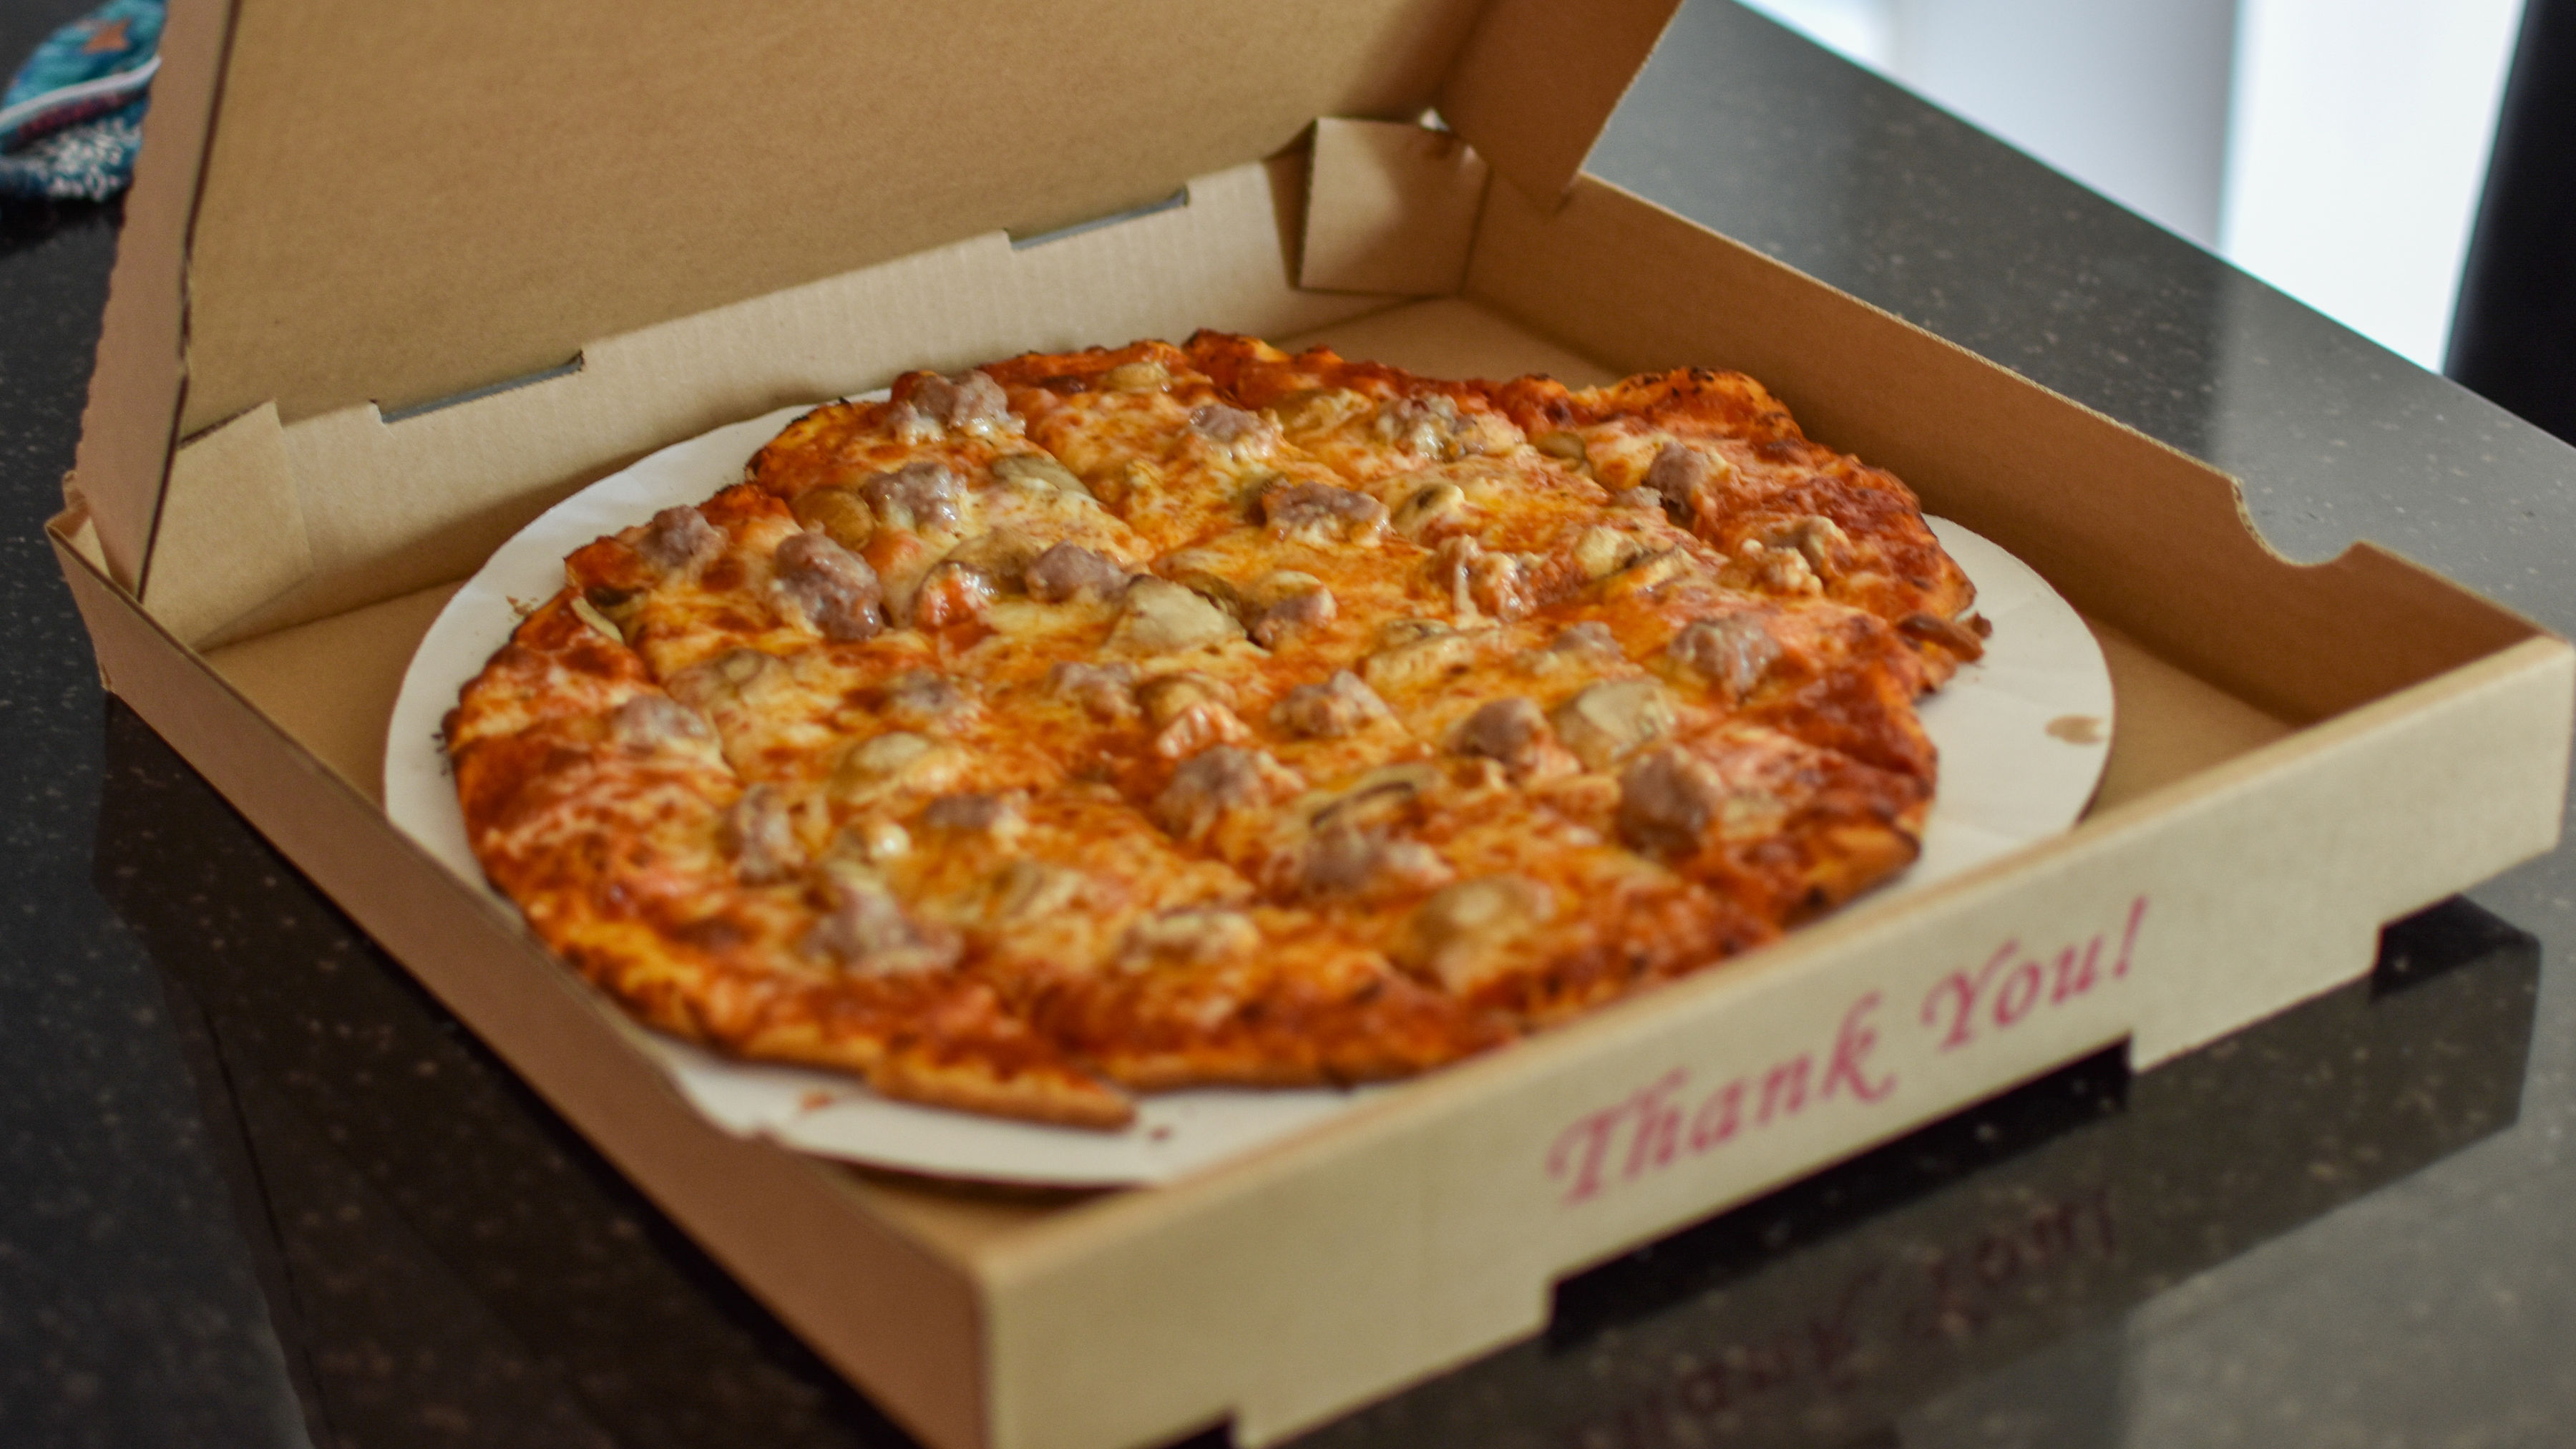 A pizza box filled with ambrosia.